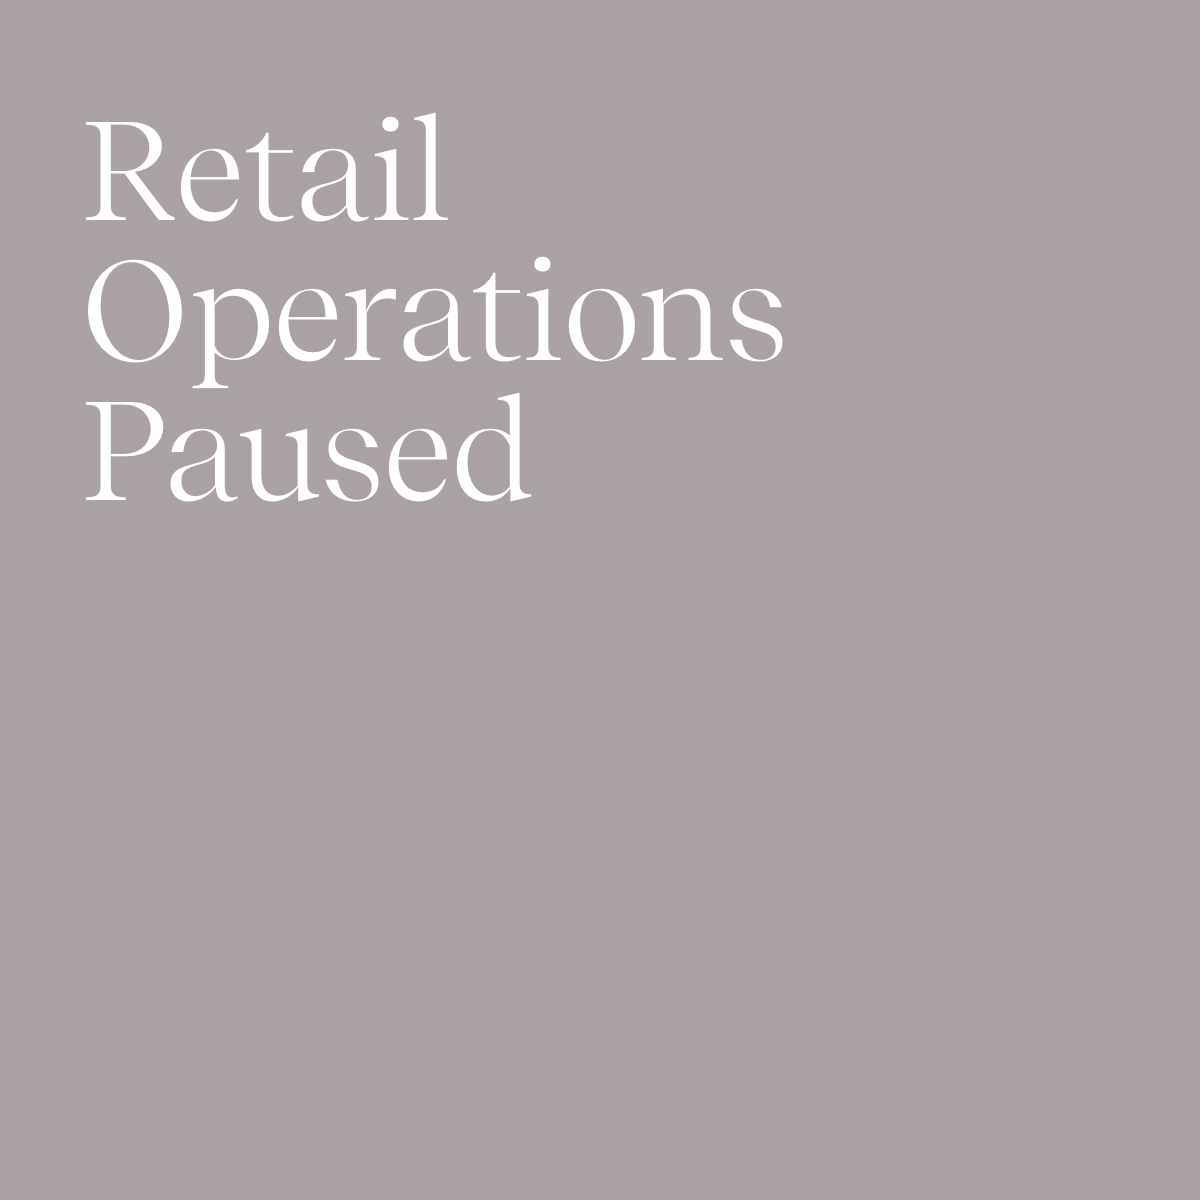 Retail Operations Paused